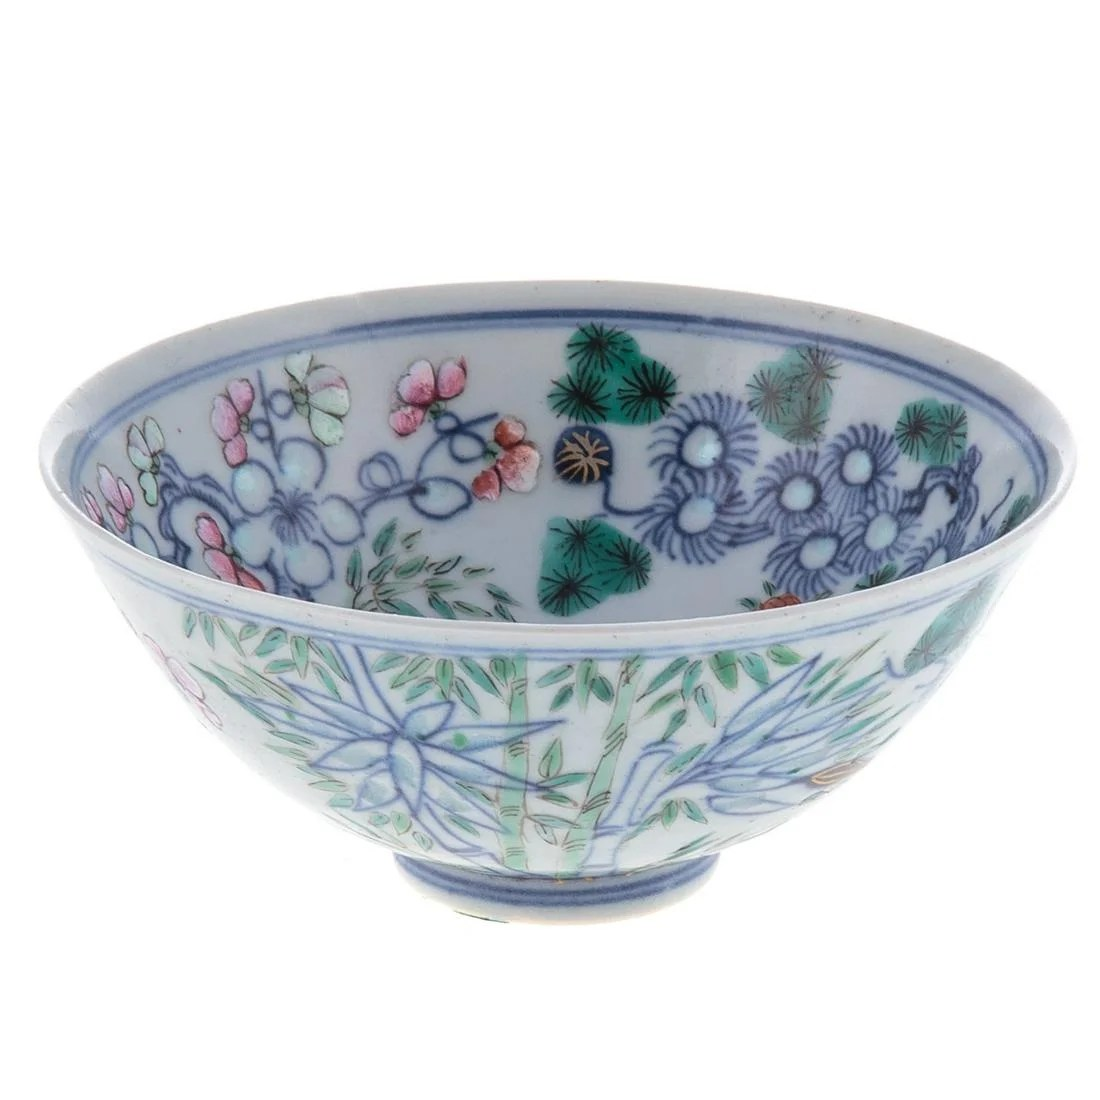 Chinese Wucai Porcelain Footed Bowl